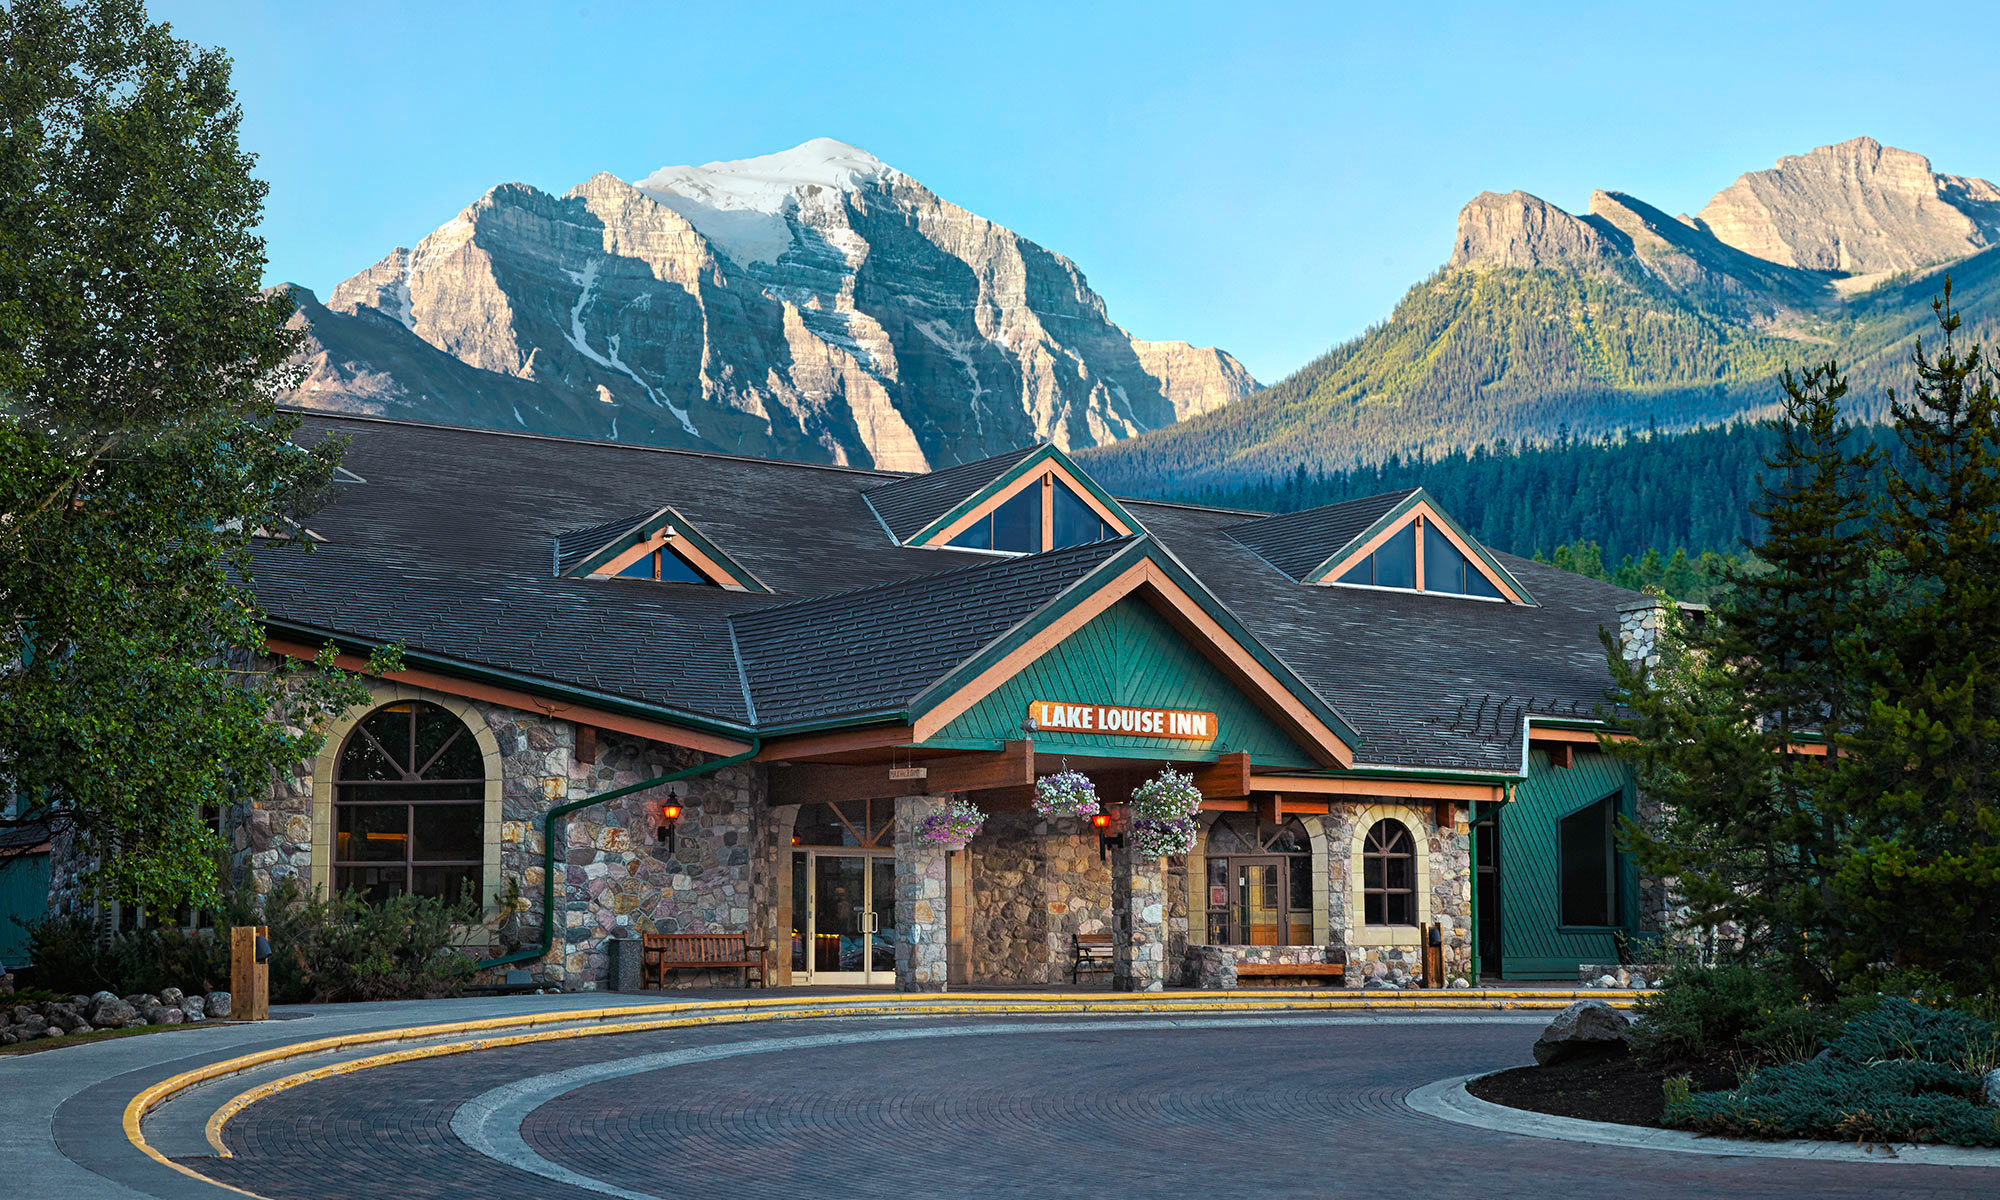 Late afternoon Lake Louise Inn entrance with end of day light on large rocky mountains behind